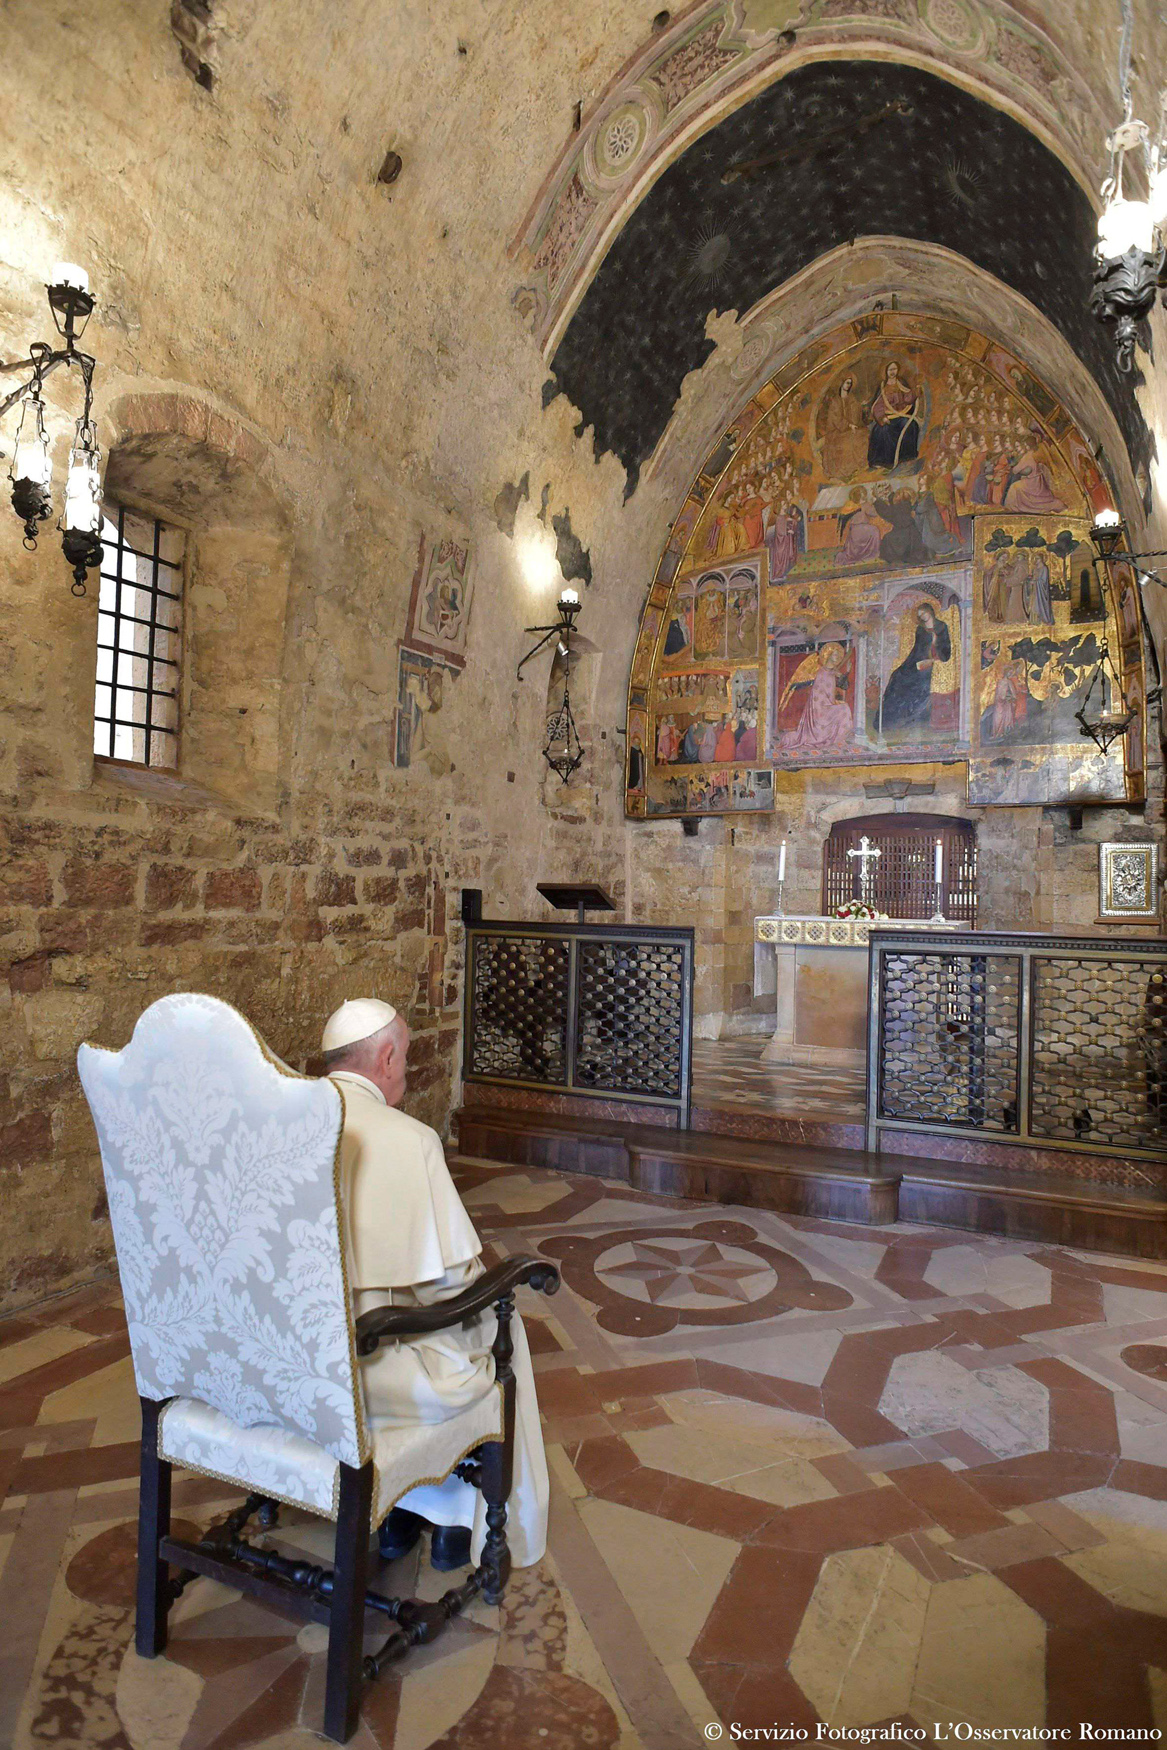 Catholic World News >> Forgive others and find peace, pope says during brief visit to Assisi – Catholic Philly